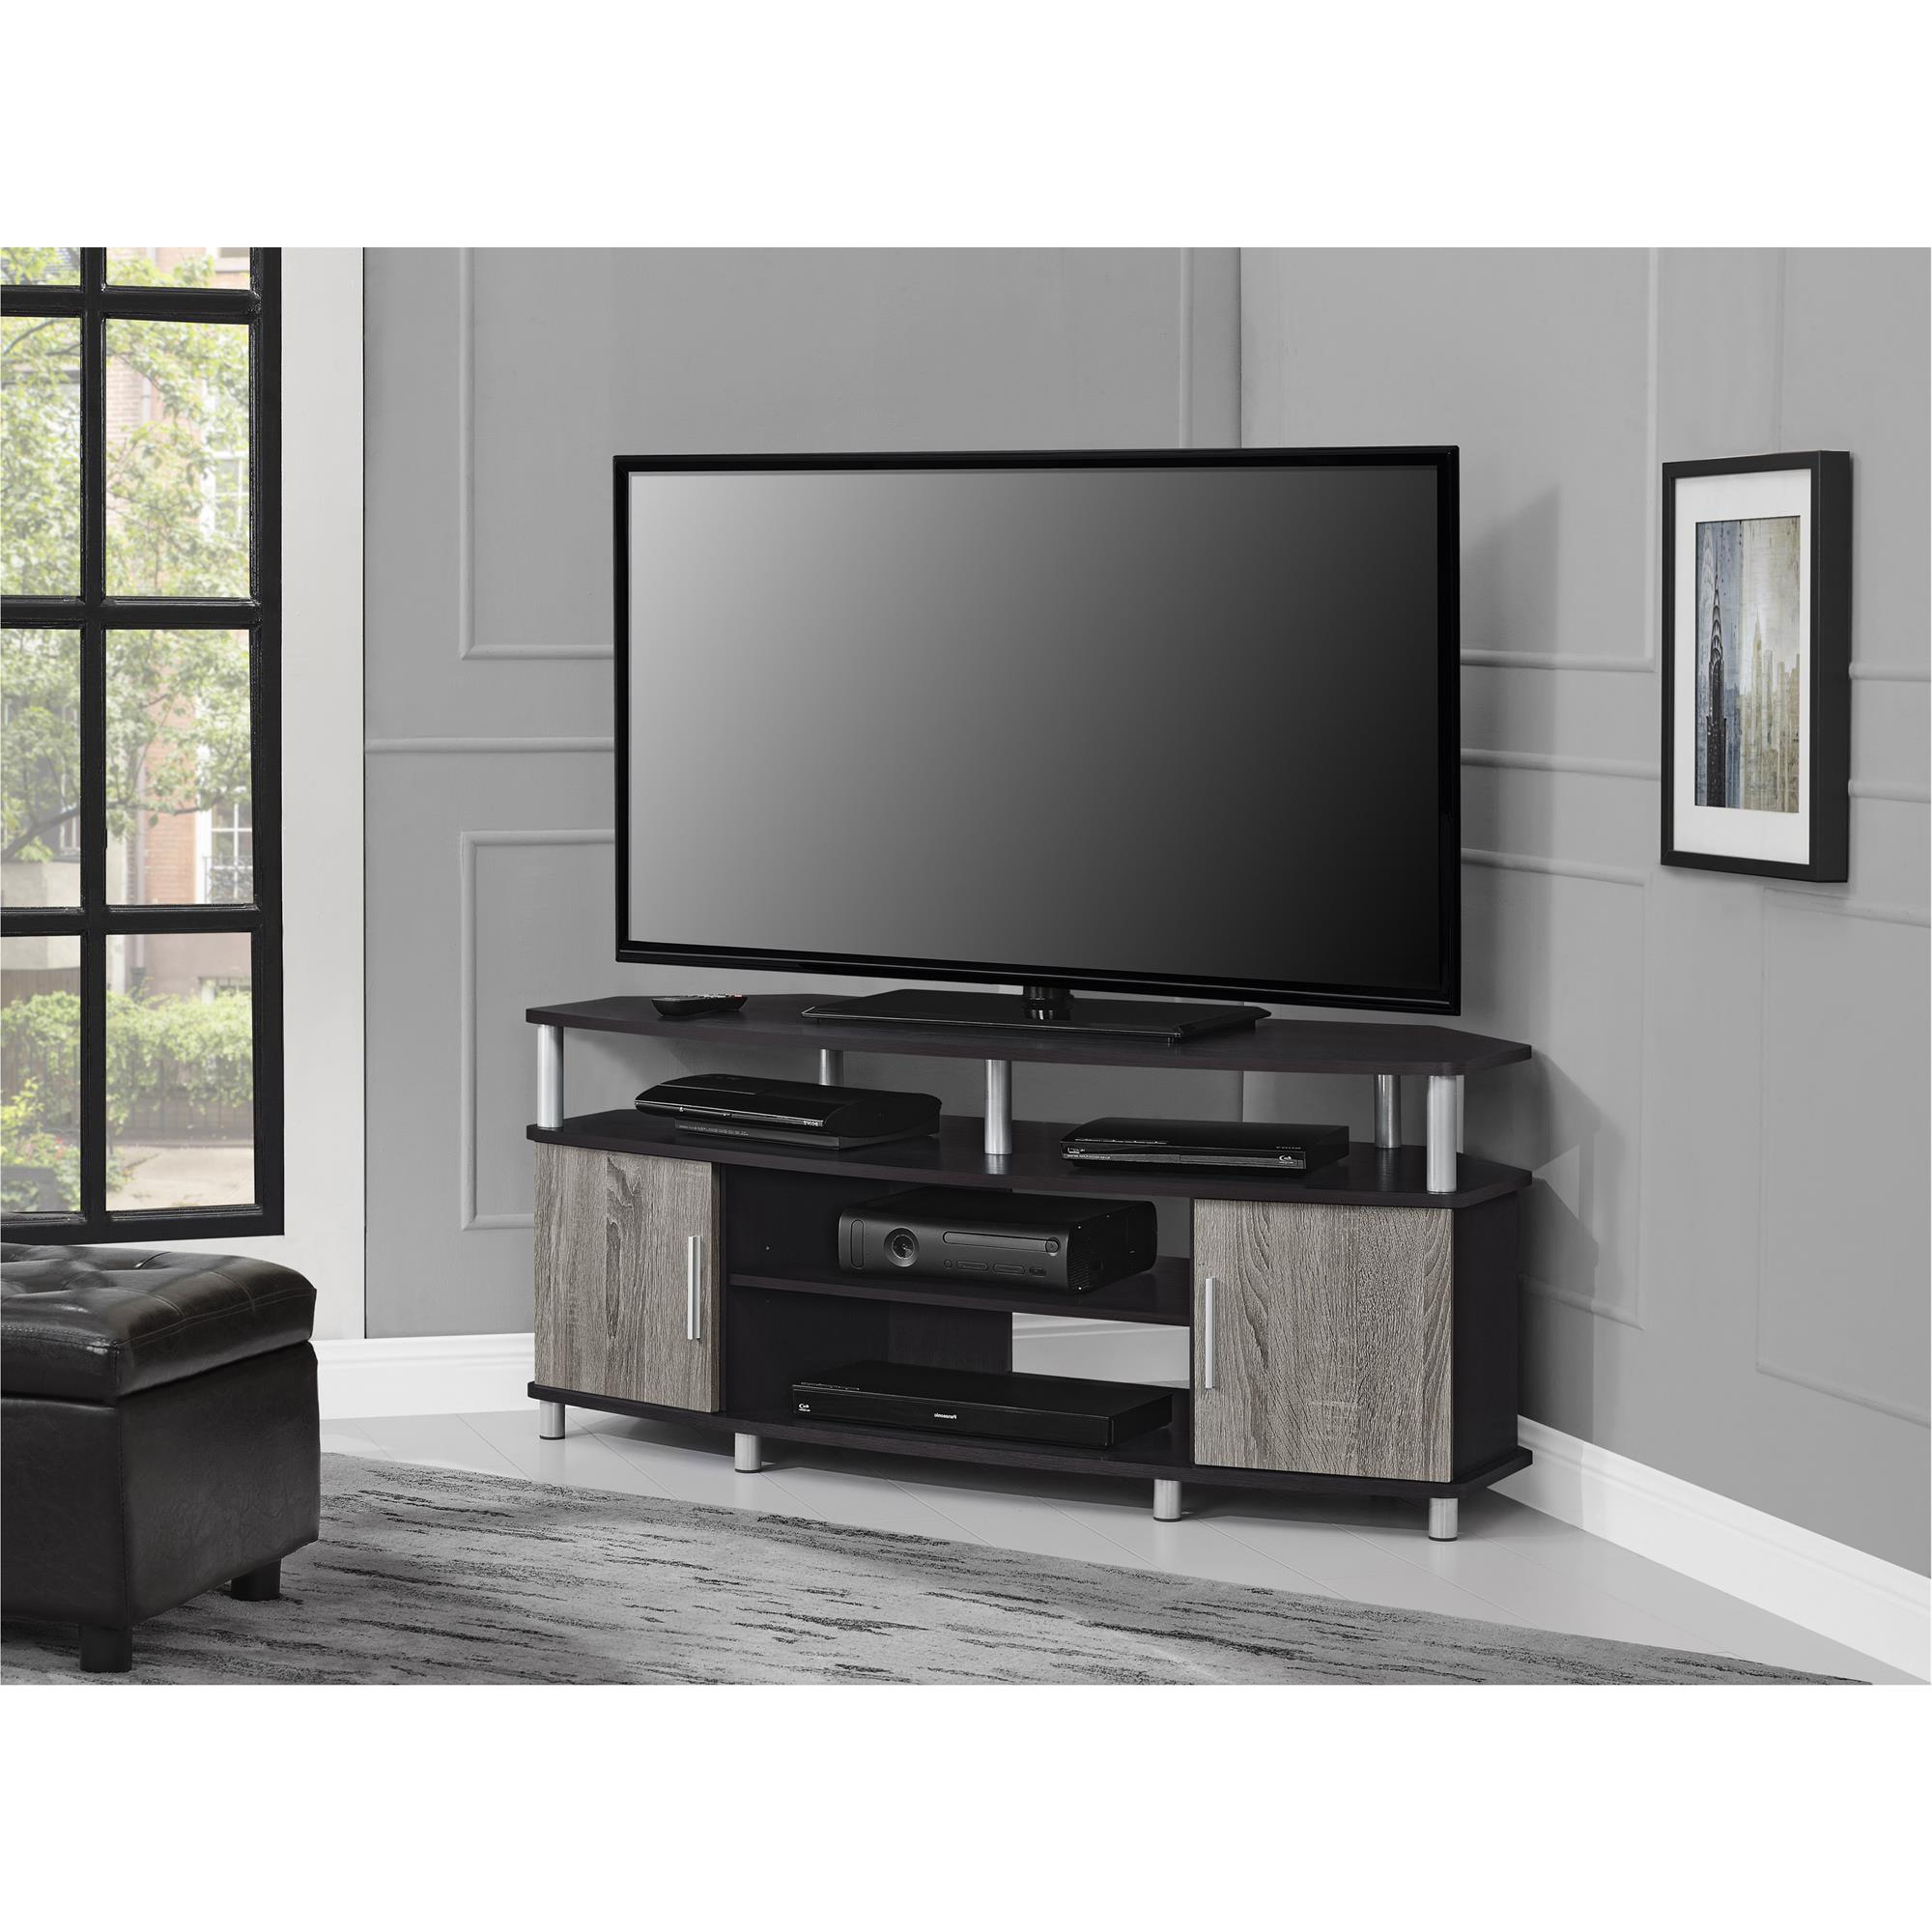 "Wooden Tv Stands For 50 Inch Tv In 2018 Ameriwood Home Carson Corner Tv Stand For Tvs Up To 50"" Wide, Black (View 11 of 20)"